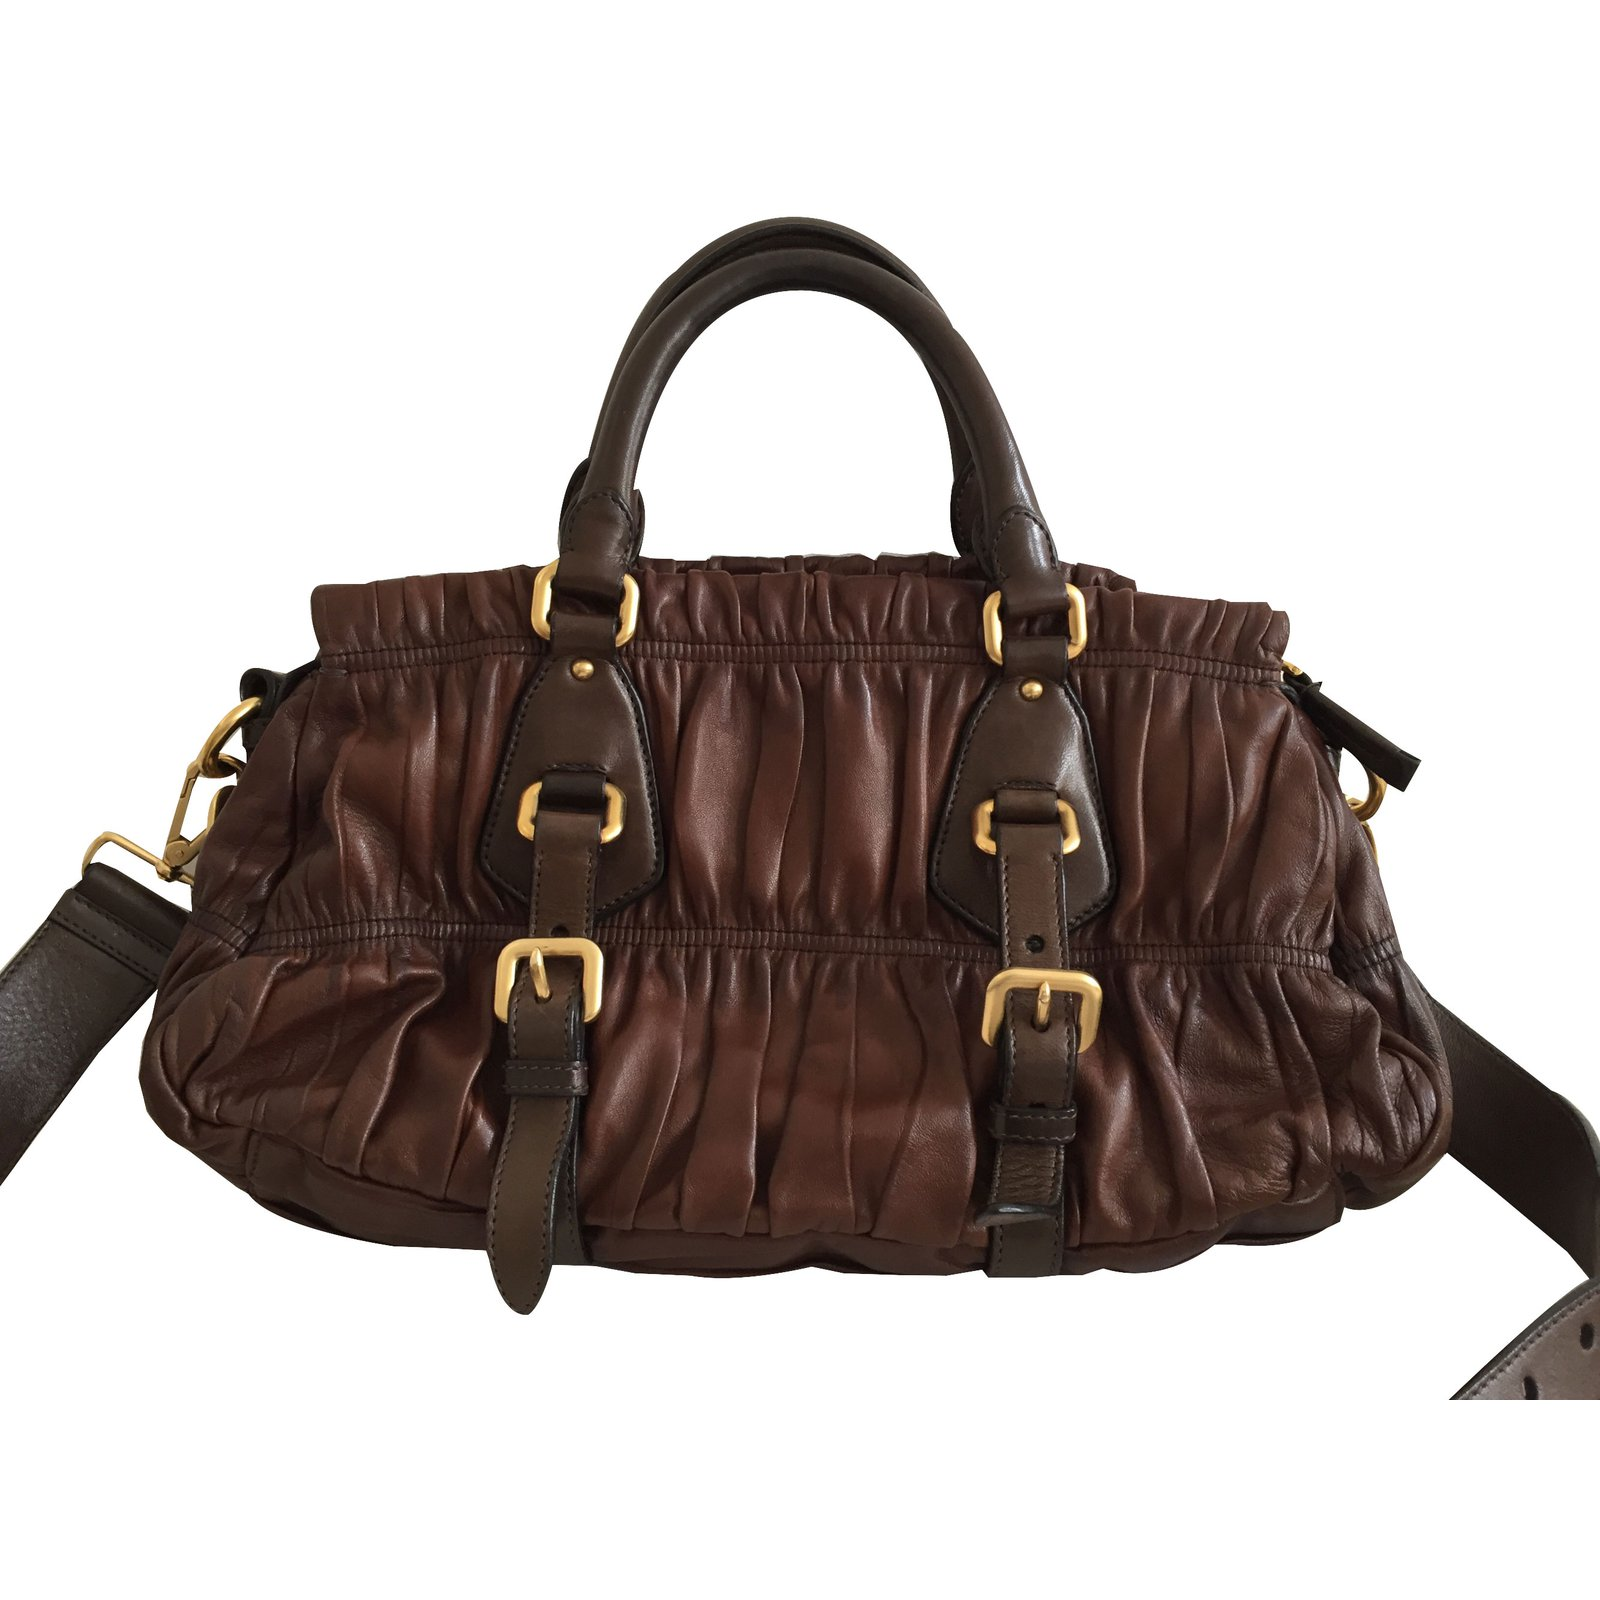 50f33485df53 Prada Prada Nappa gauffre bag brown Handbags Leather Brown ref.30329 - Joli  Closet